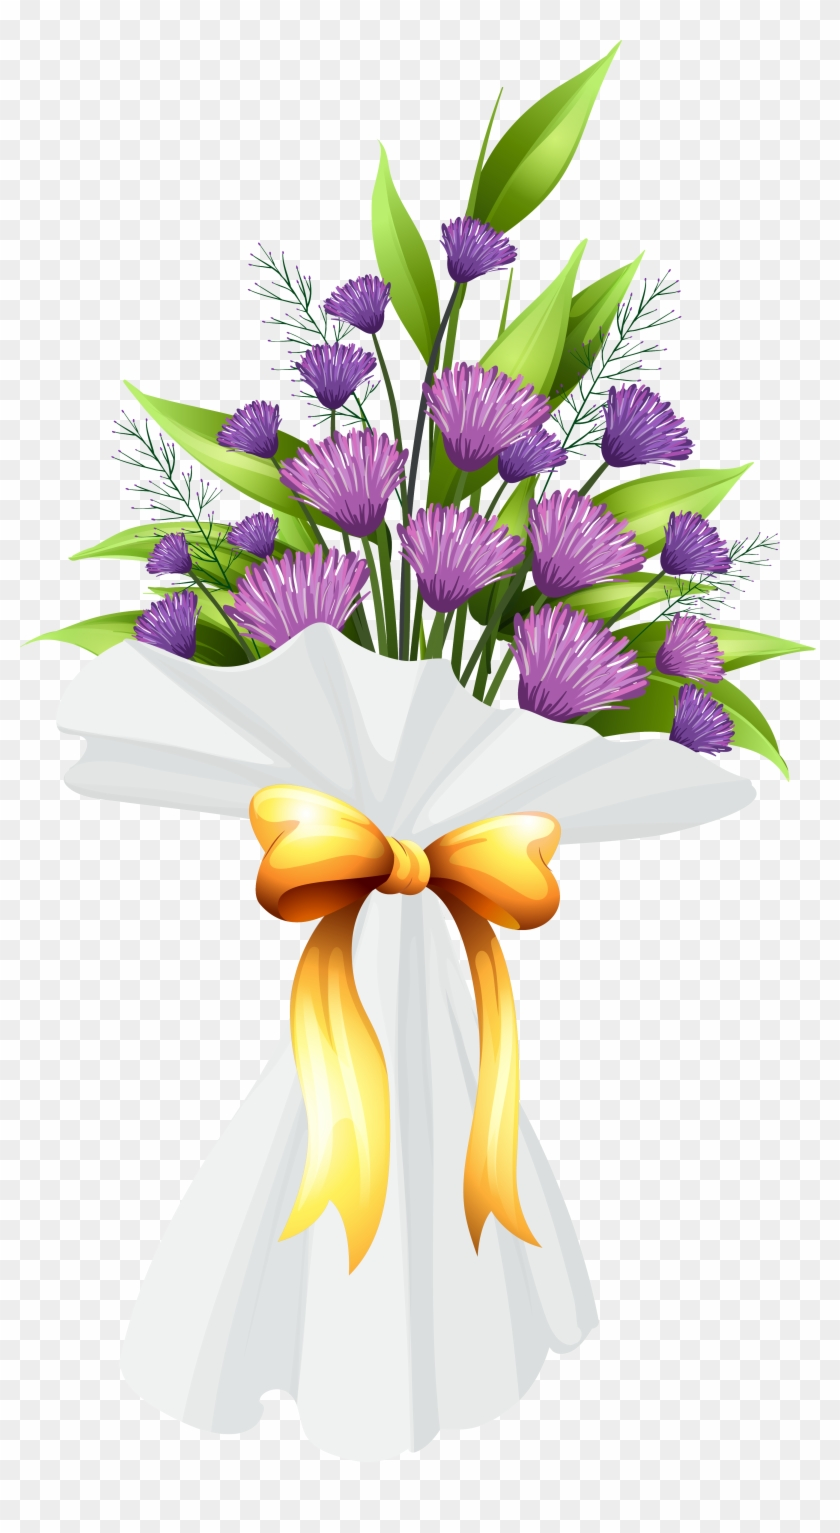 Purple Flowers Bouquet Png Clipart Image Purple Flower Bouquet